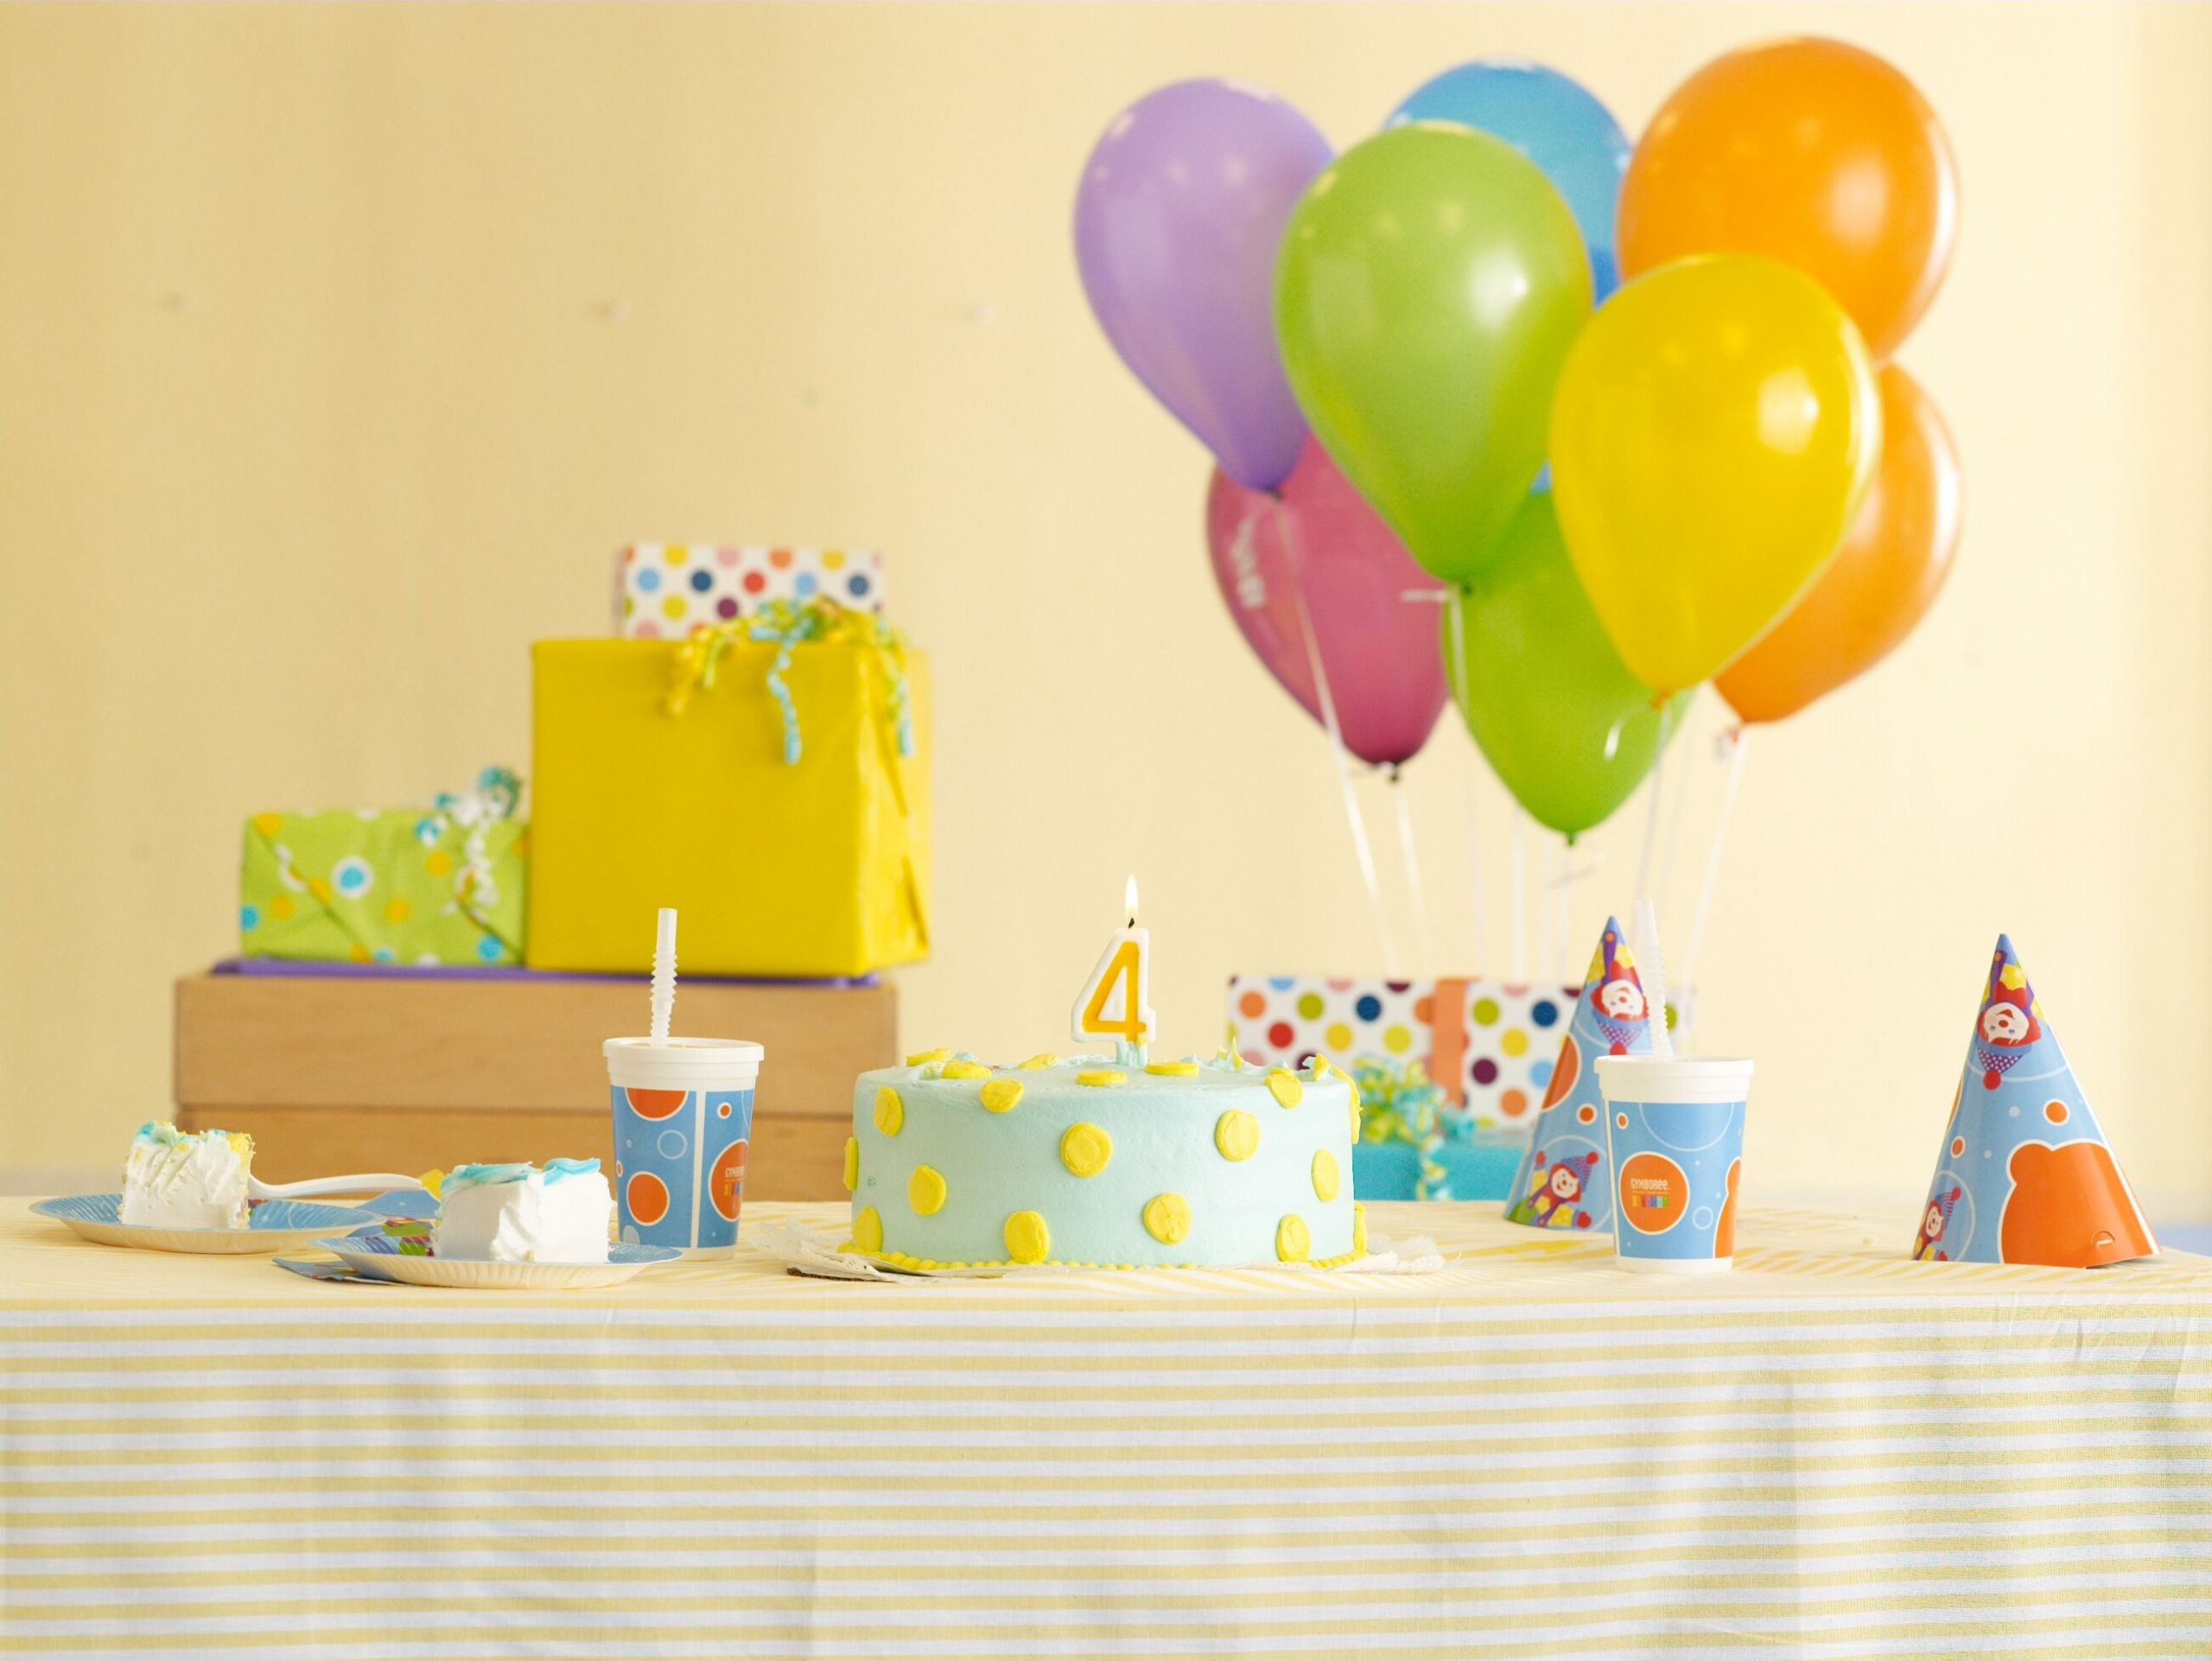 Kids Birthday Party Location Ideas  Kids Birthday Party Location